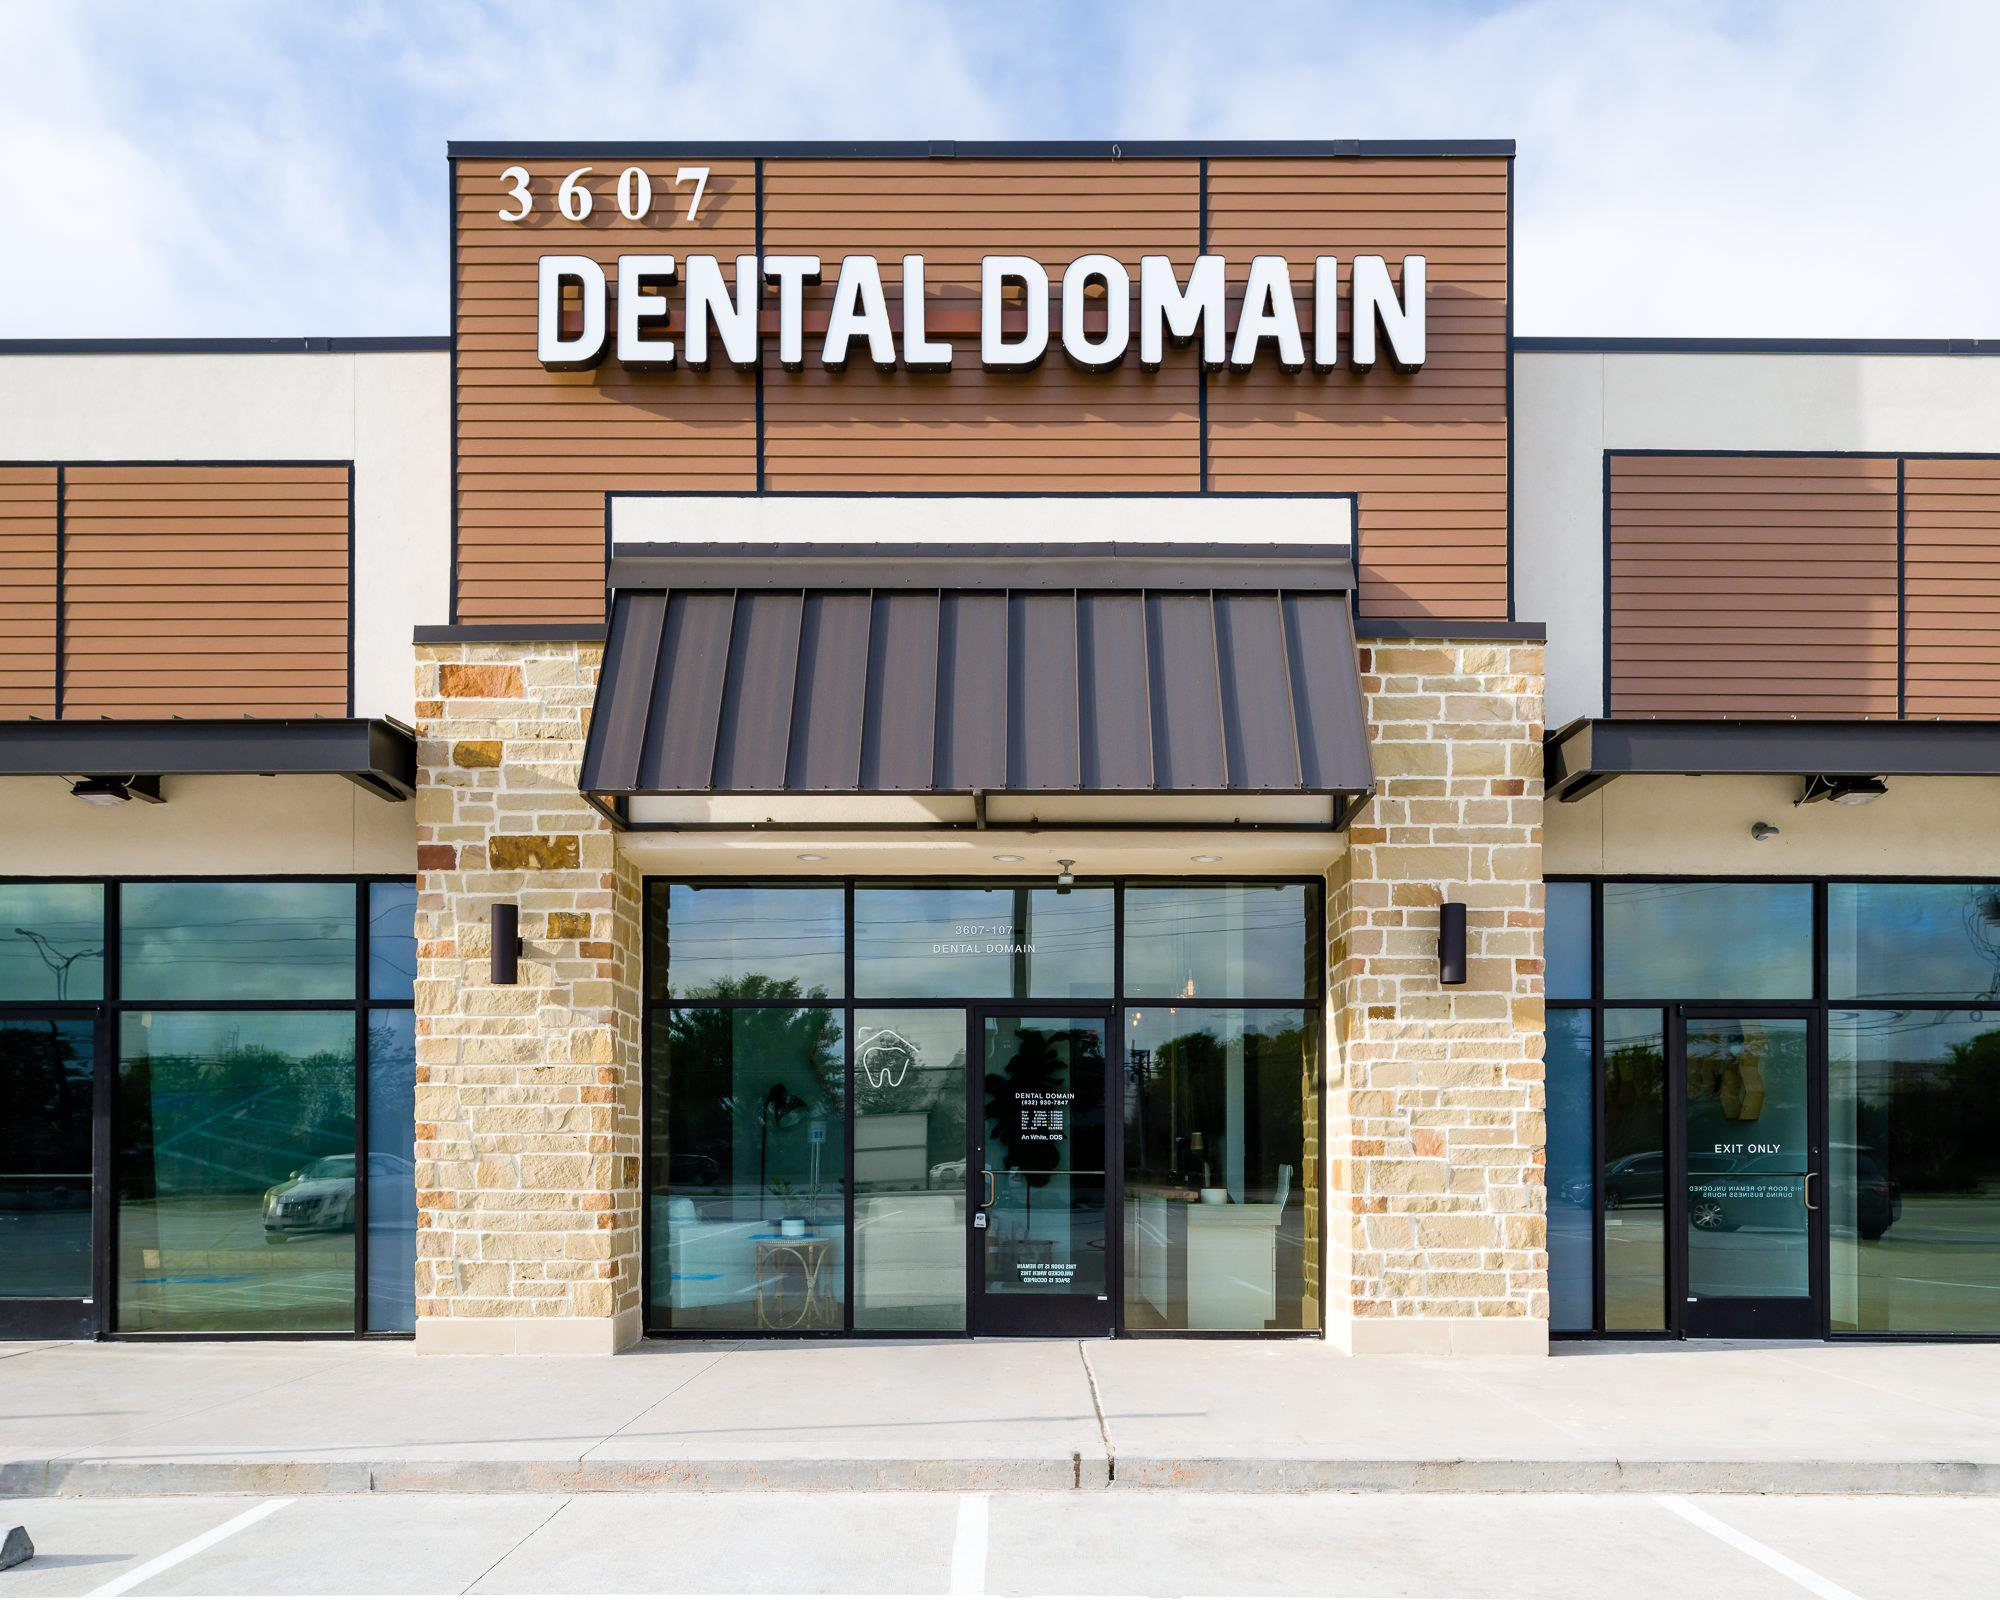 Dental Domain